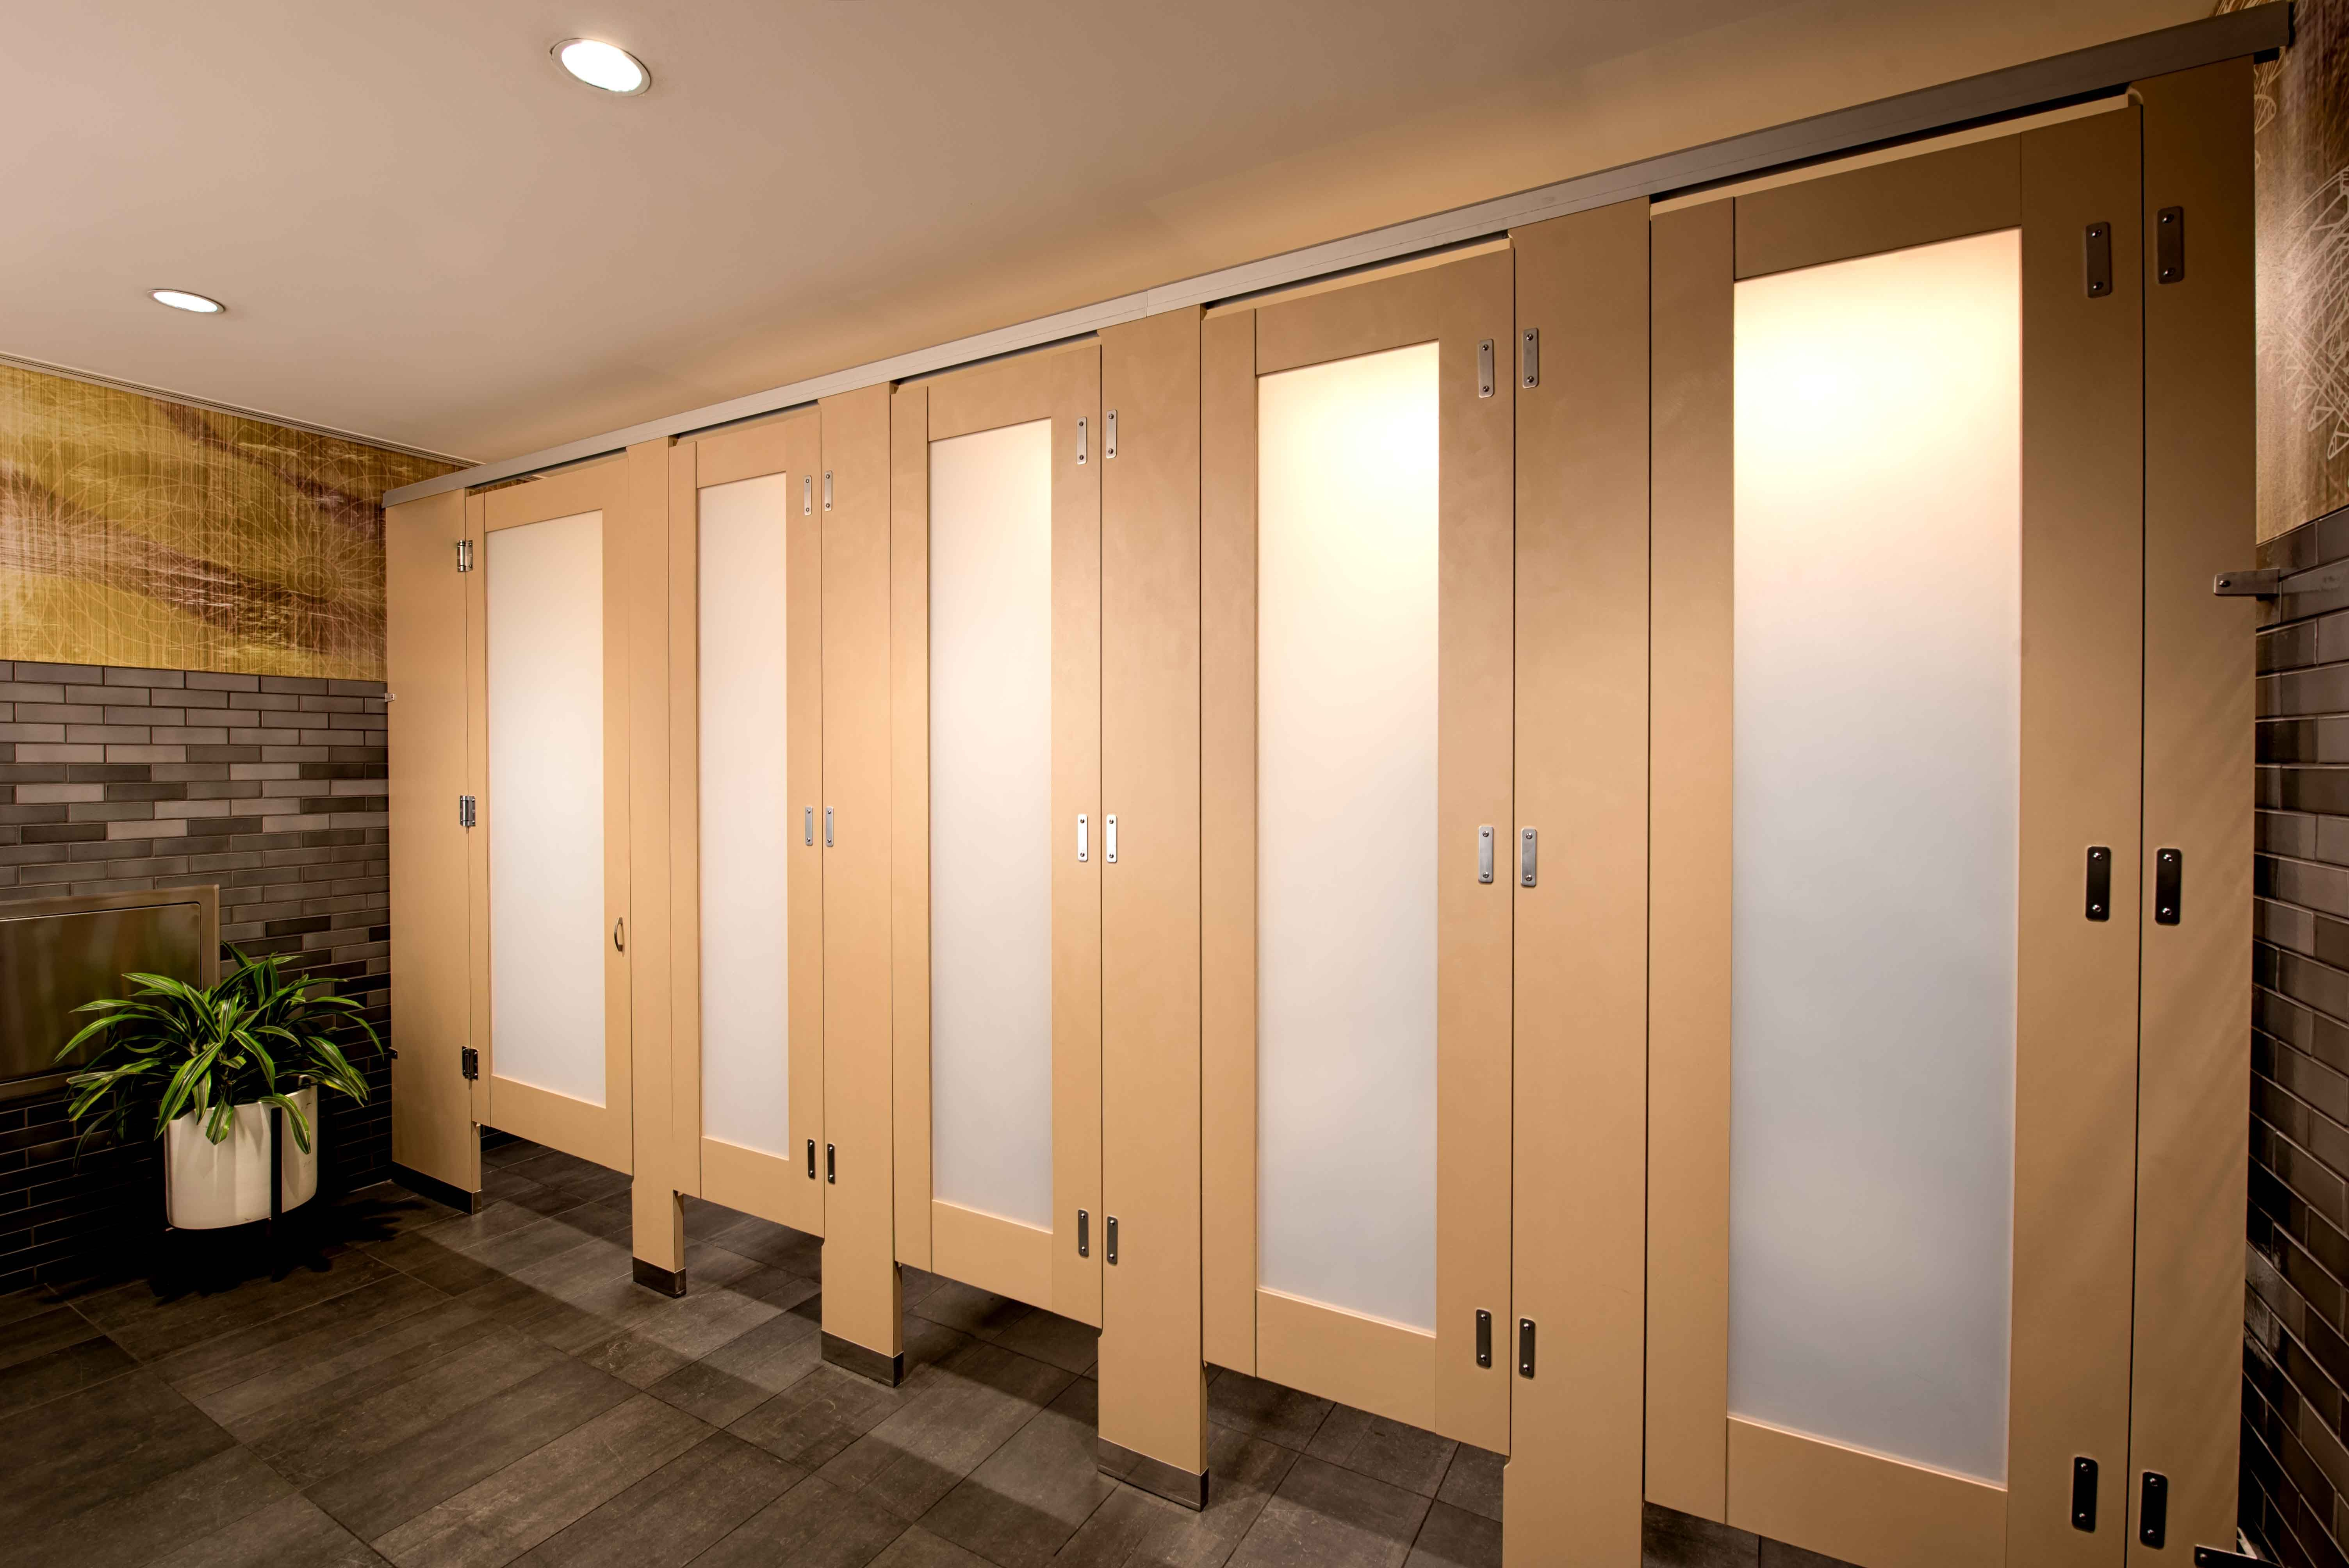 Ironwood Manufacturing Laminate Toilet Partition And Bathroom